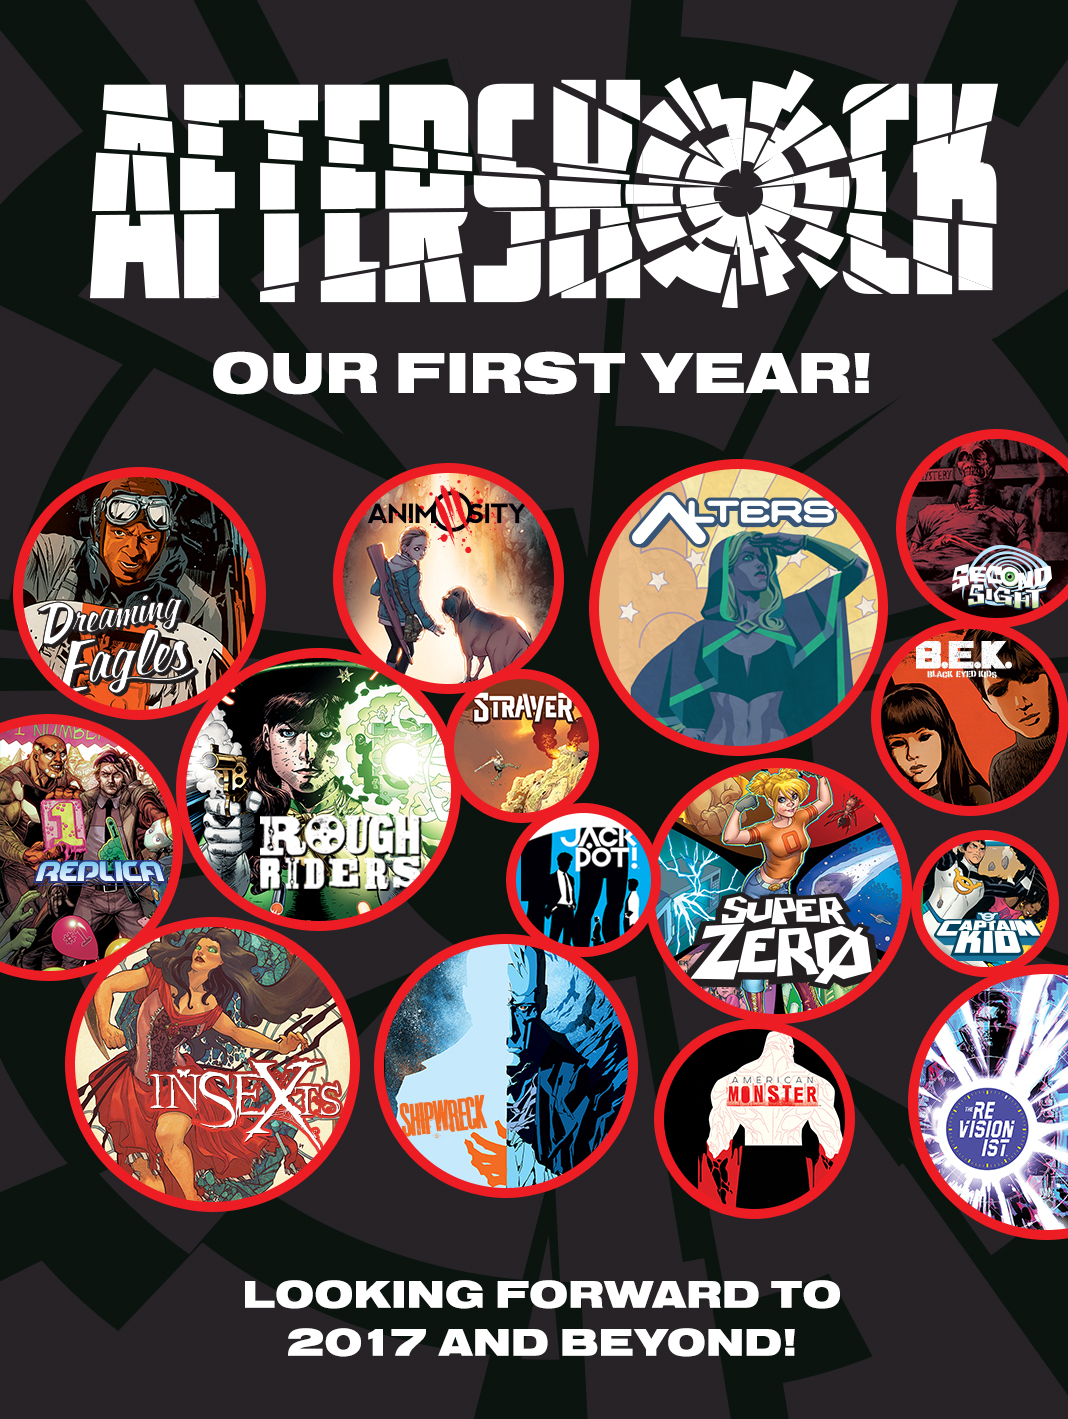 AfterShock Comics Set to Expand Titles After Successful 2016; New Series in the Works with Garth Ennis